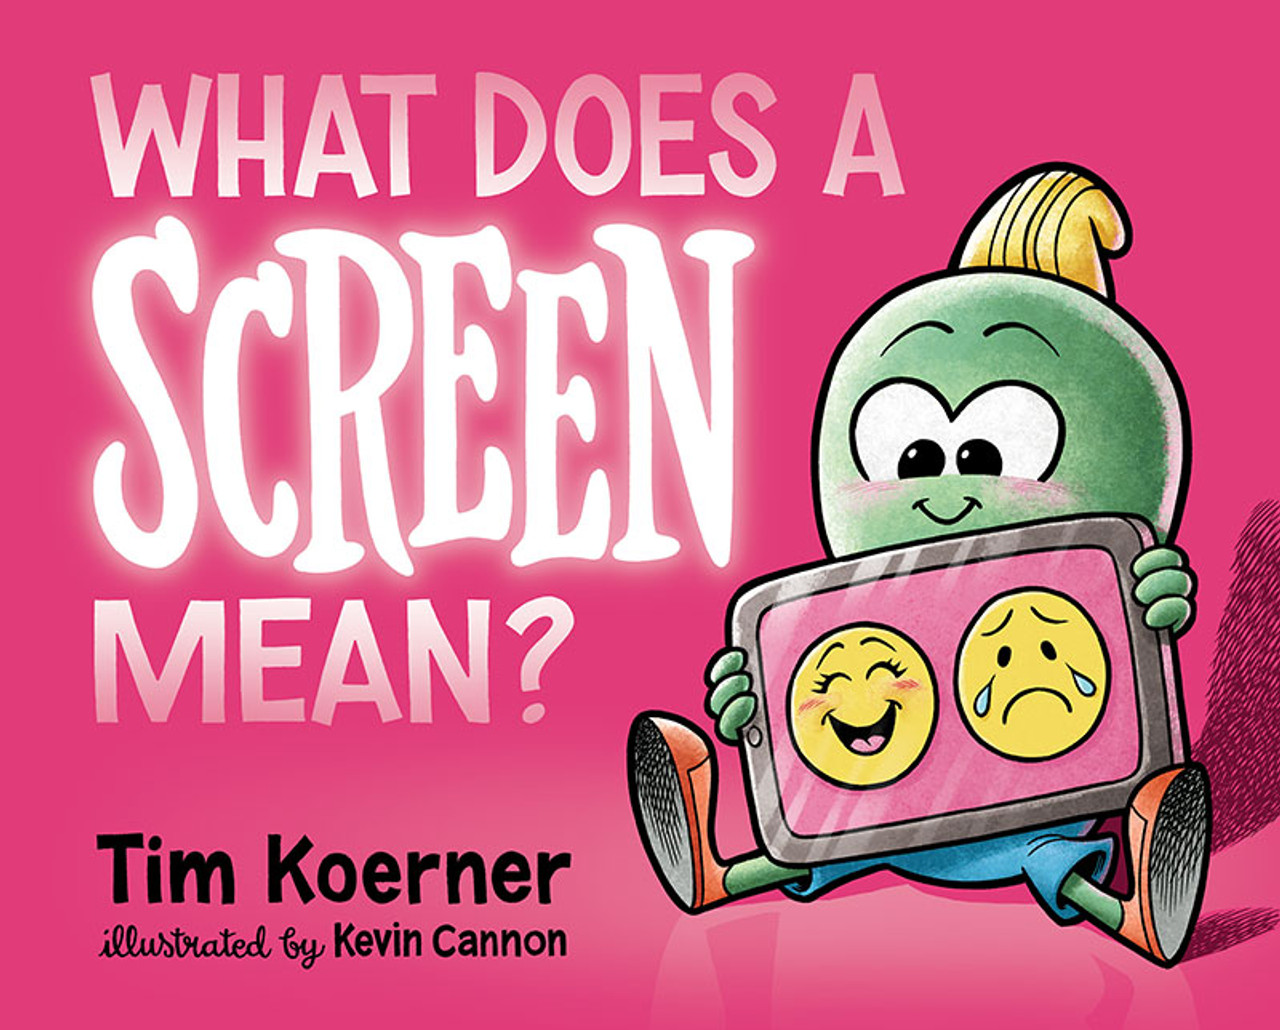 What Does a Screen Mean?